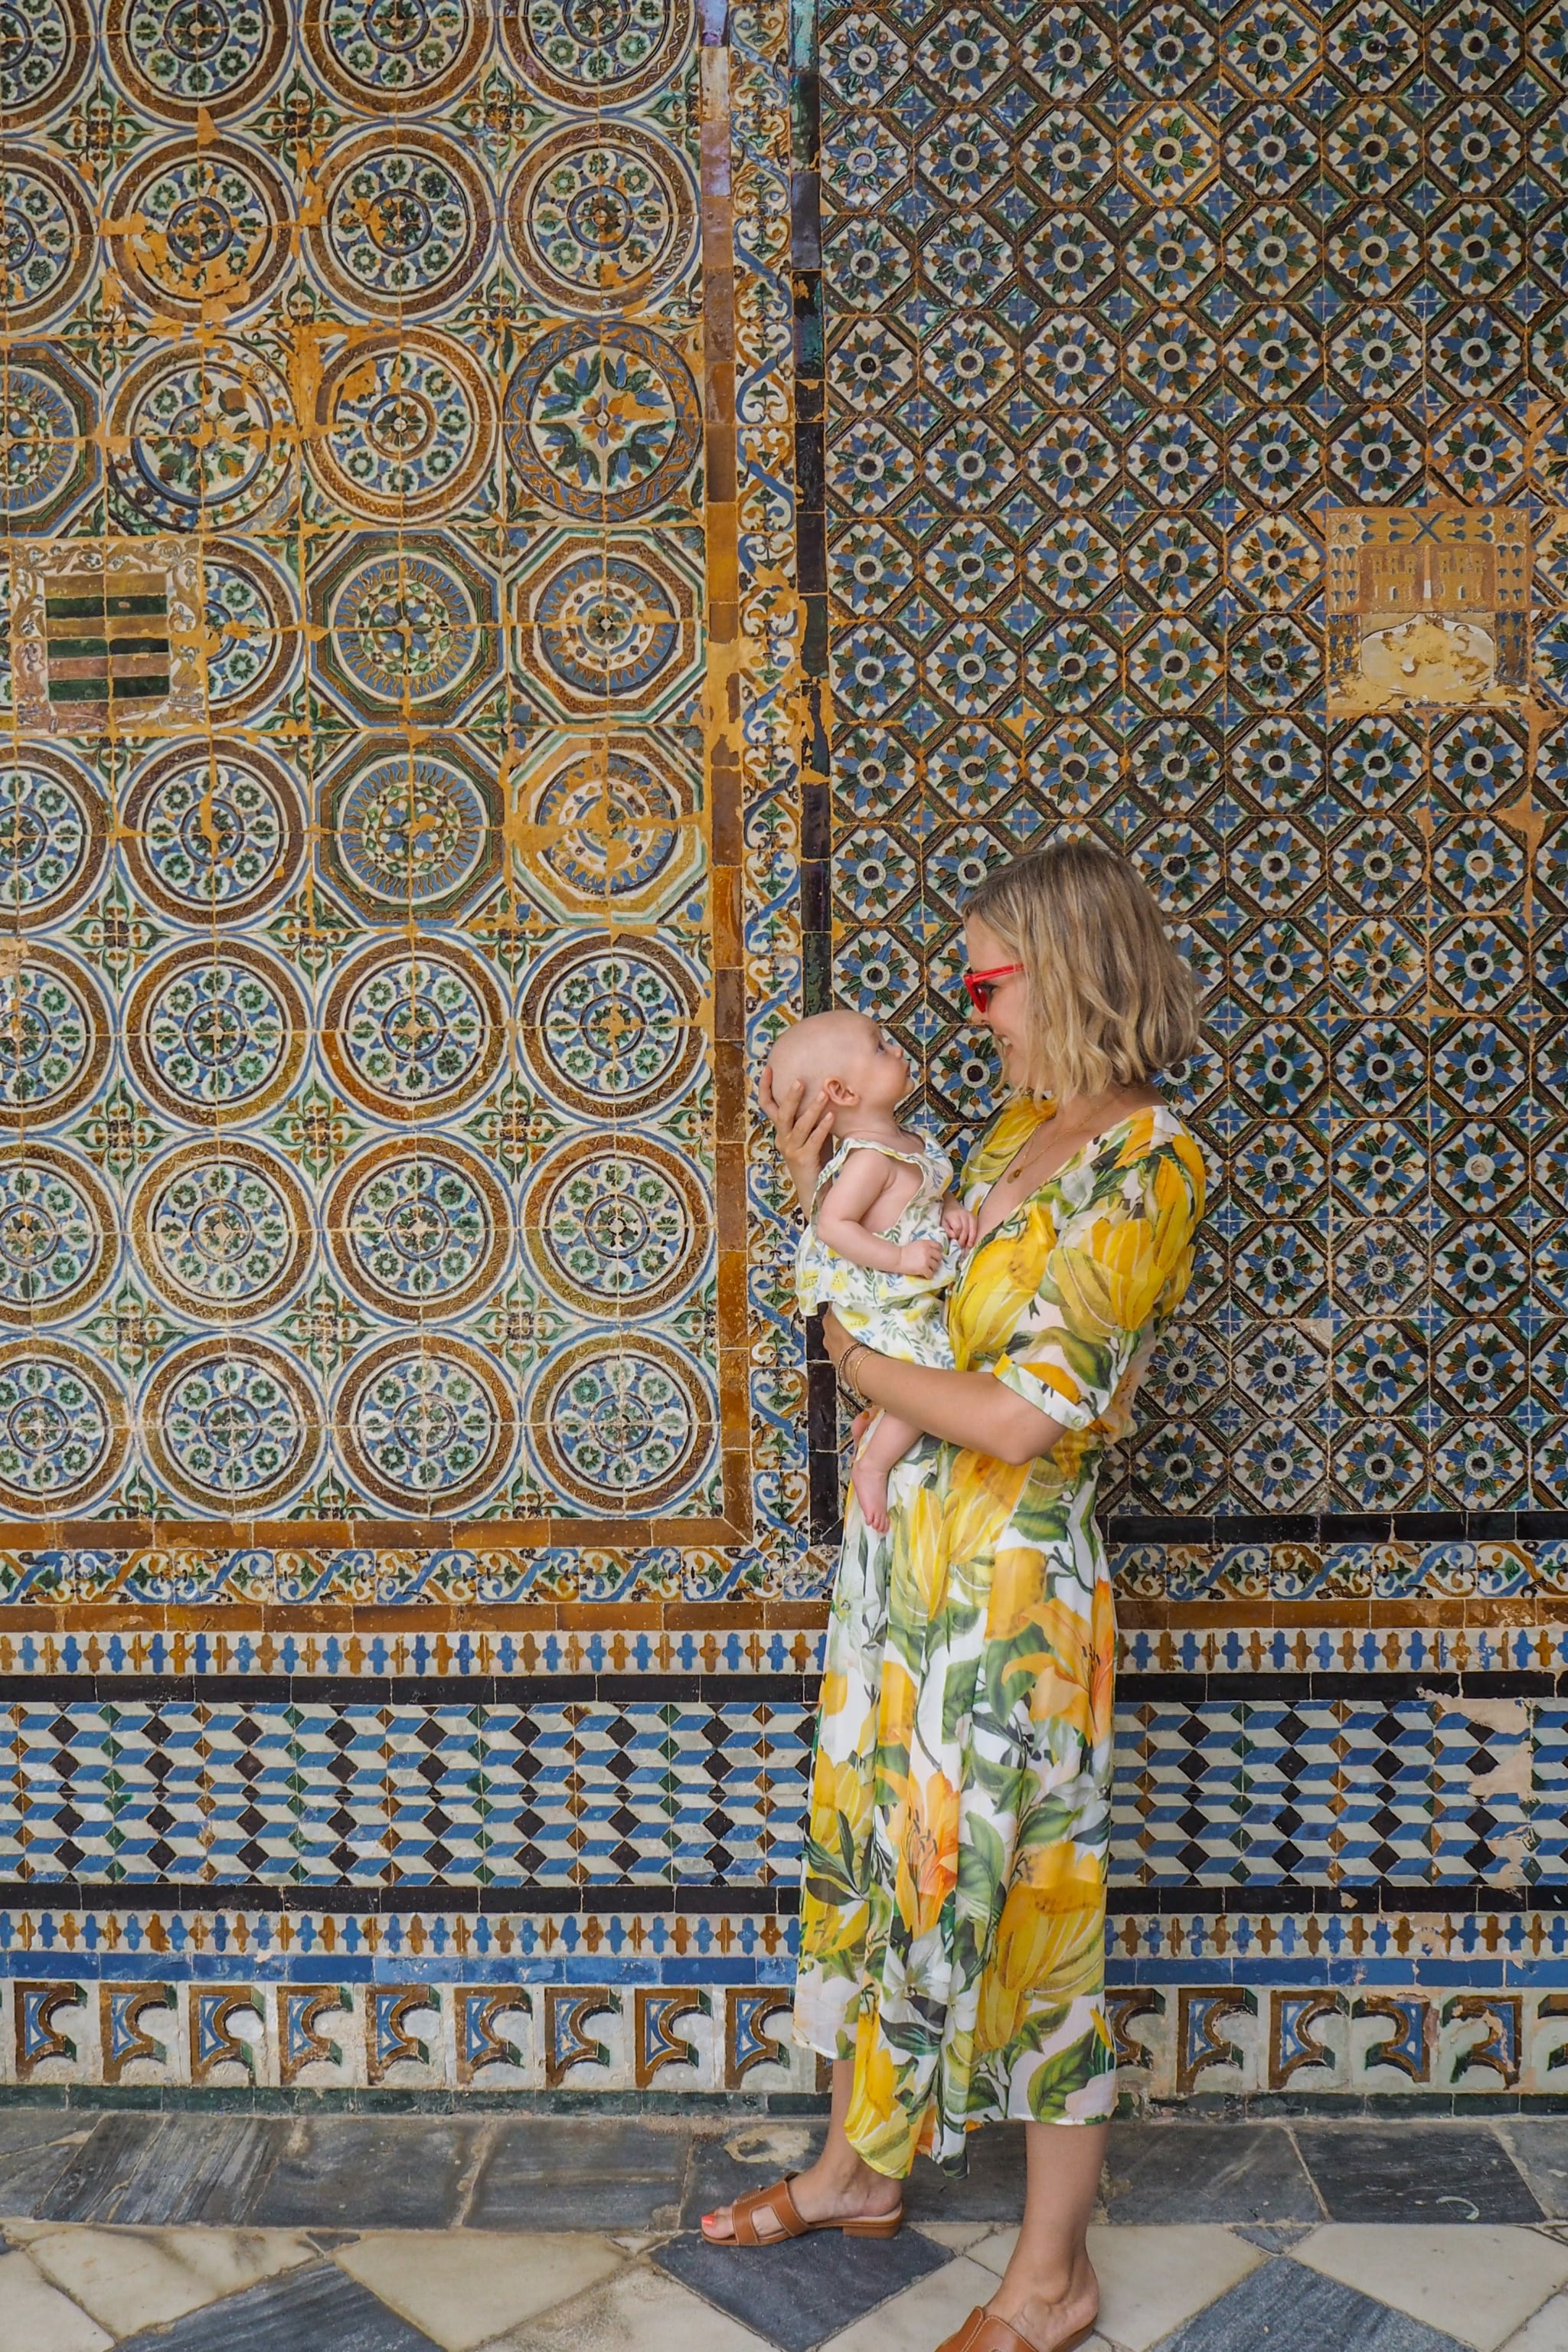 5 Life Lessons For Travelling With A Baby The Frugality Blog